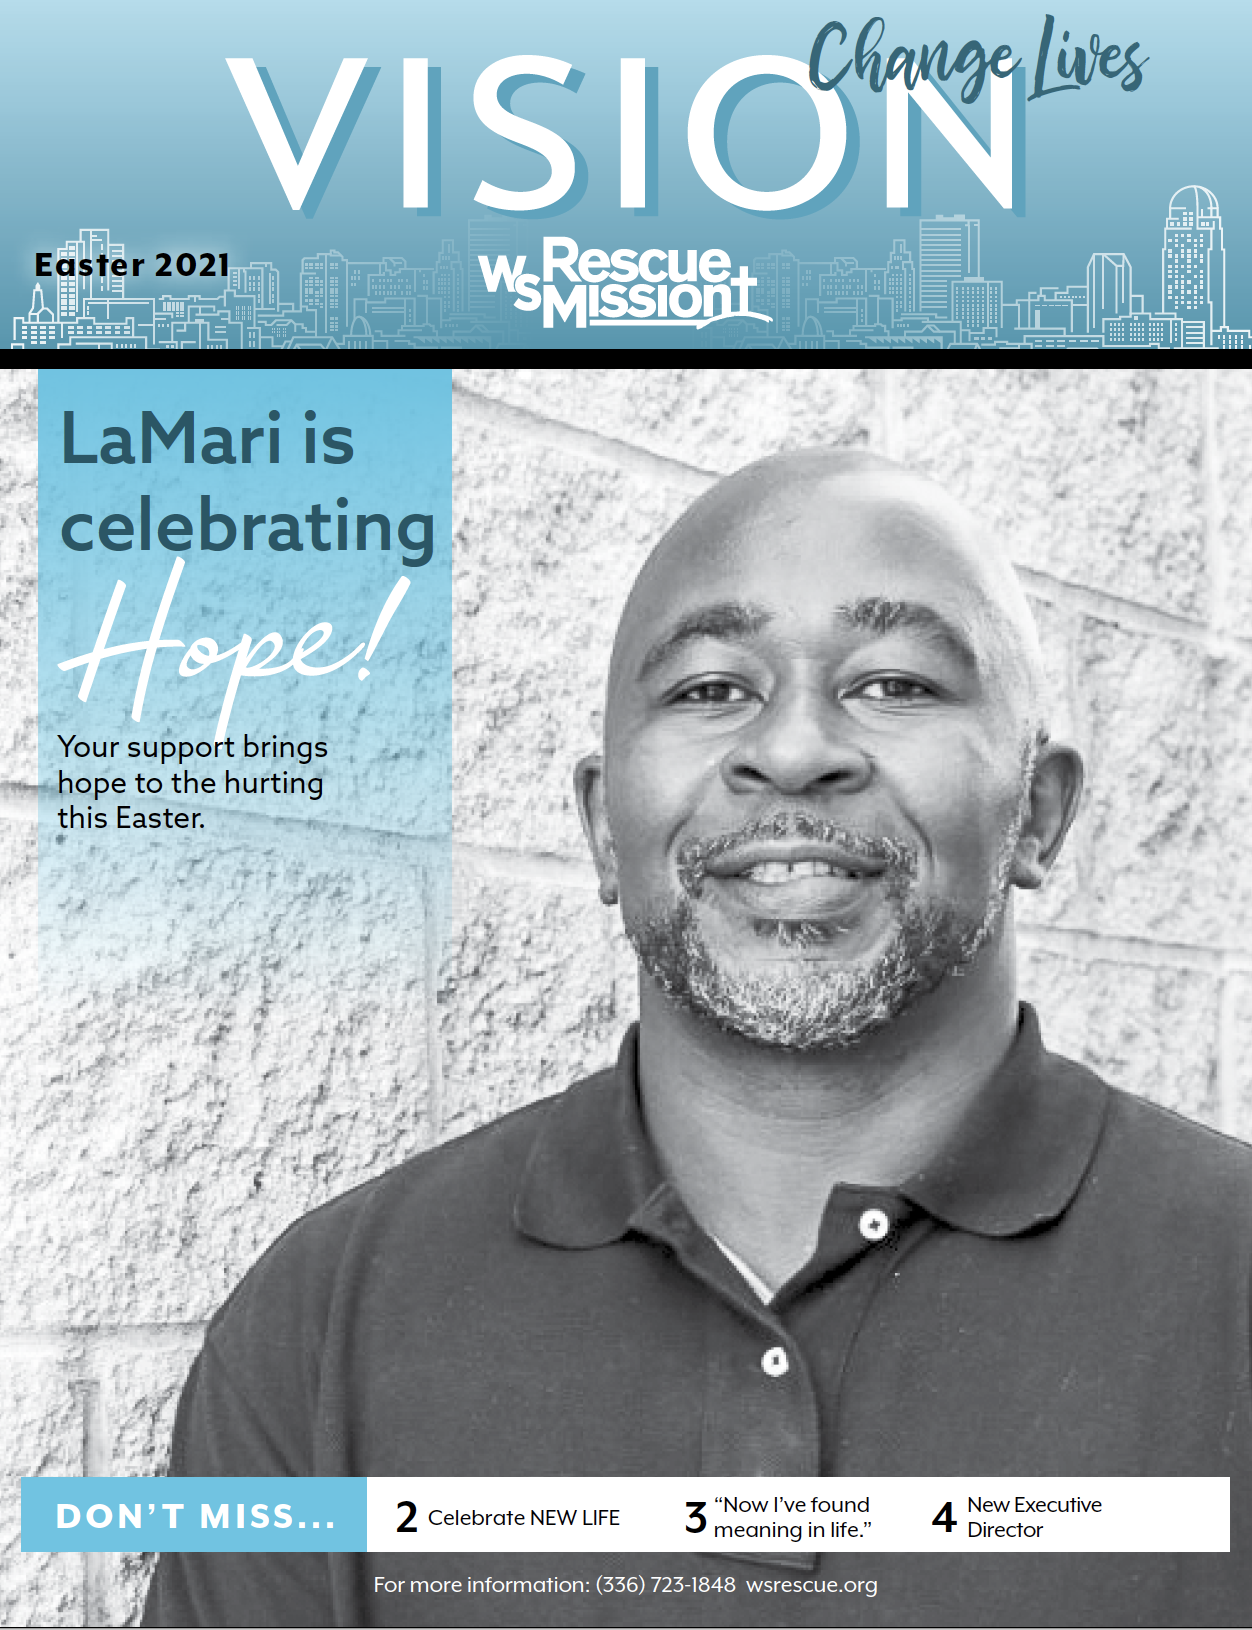 LaMari is celebrating hope this Easter at the Winston-Salem Rescue Mission